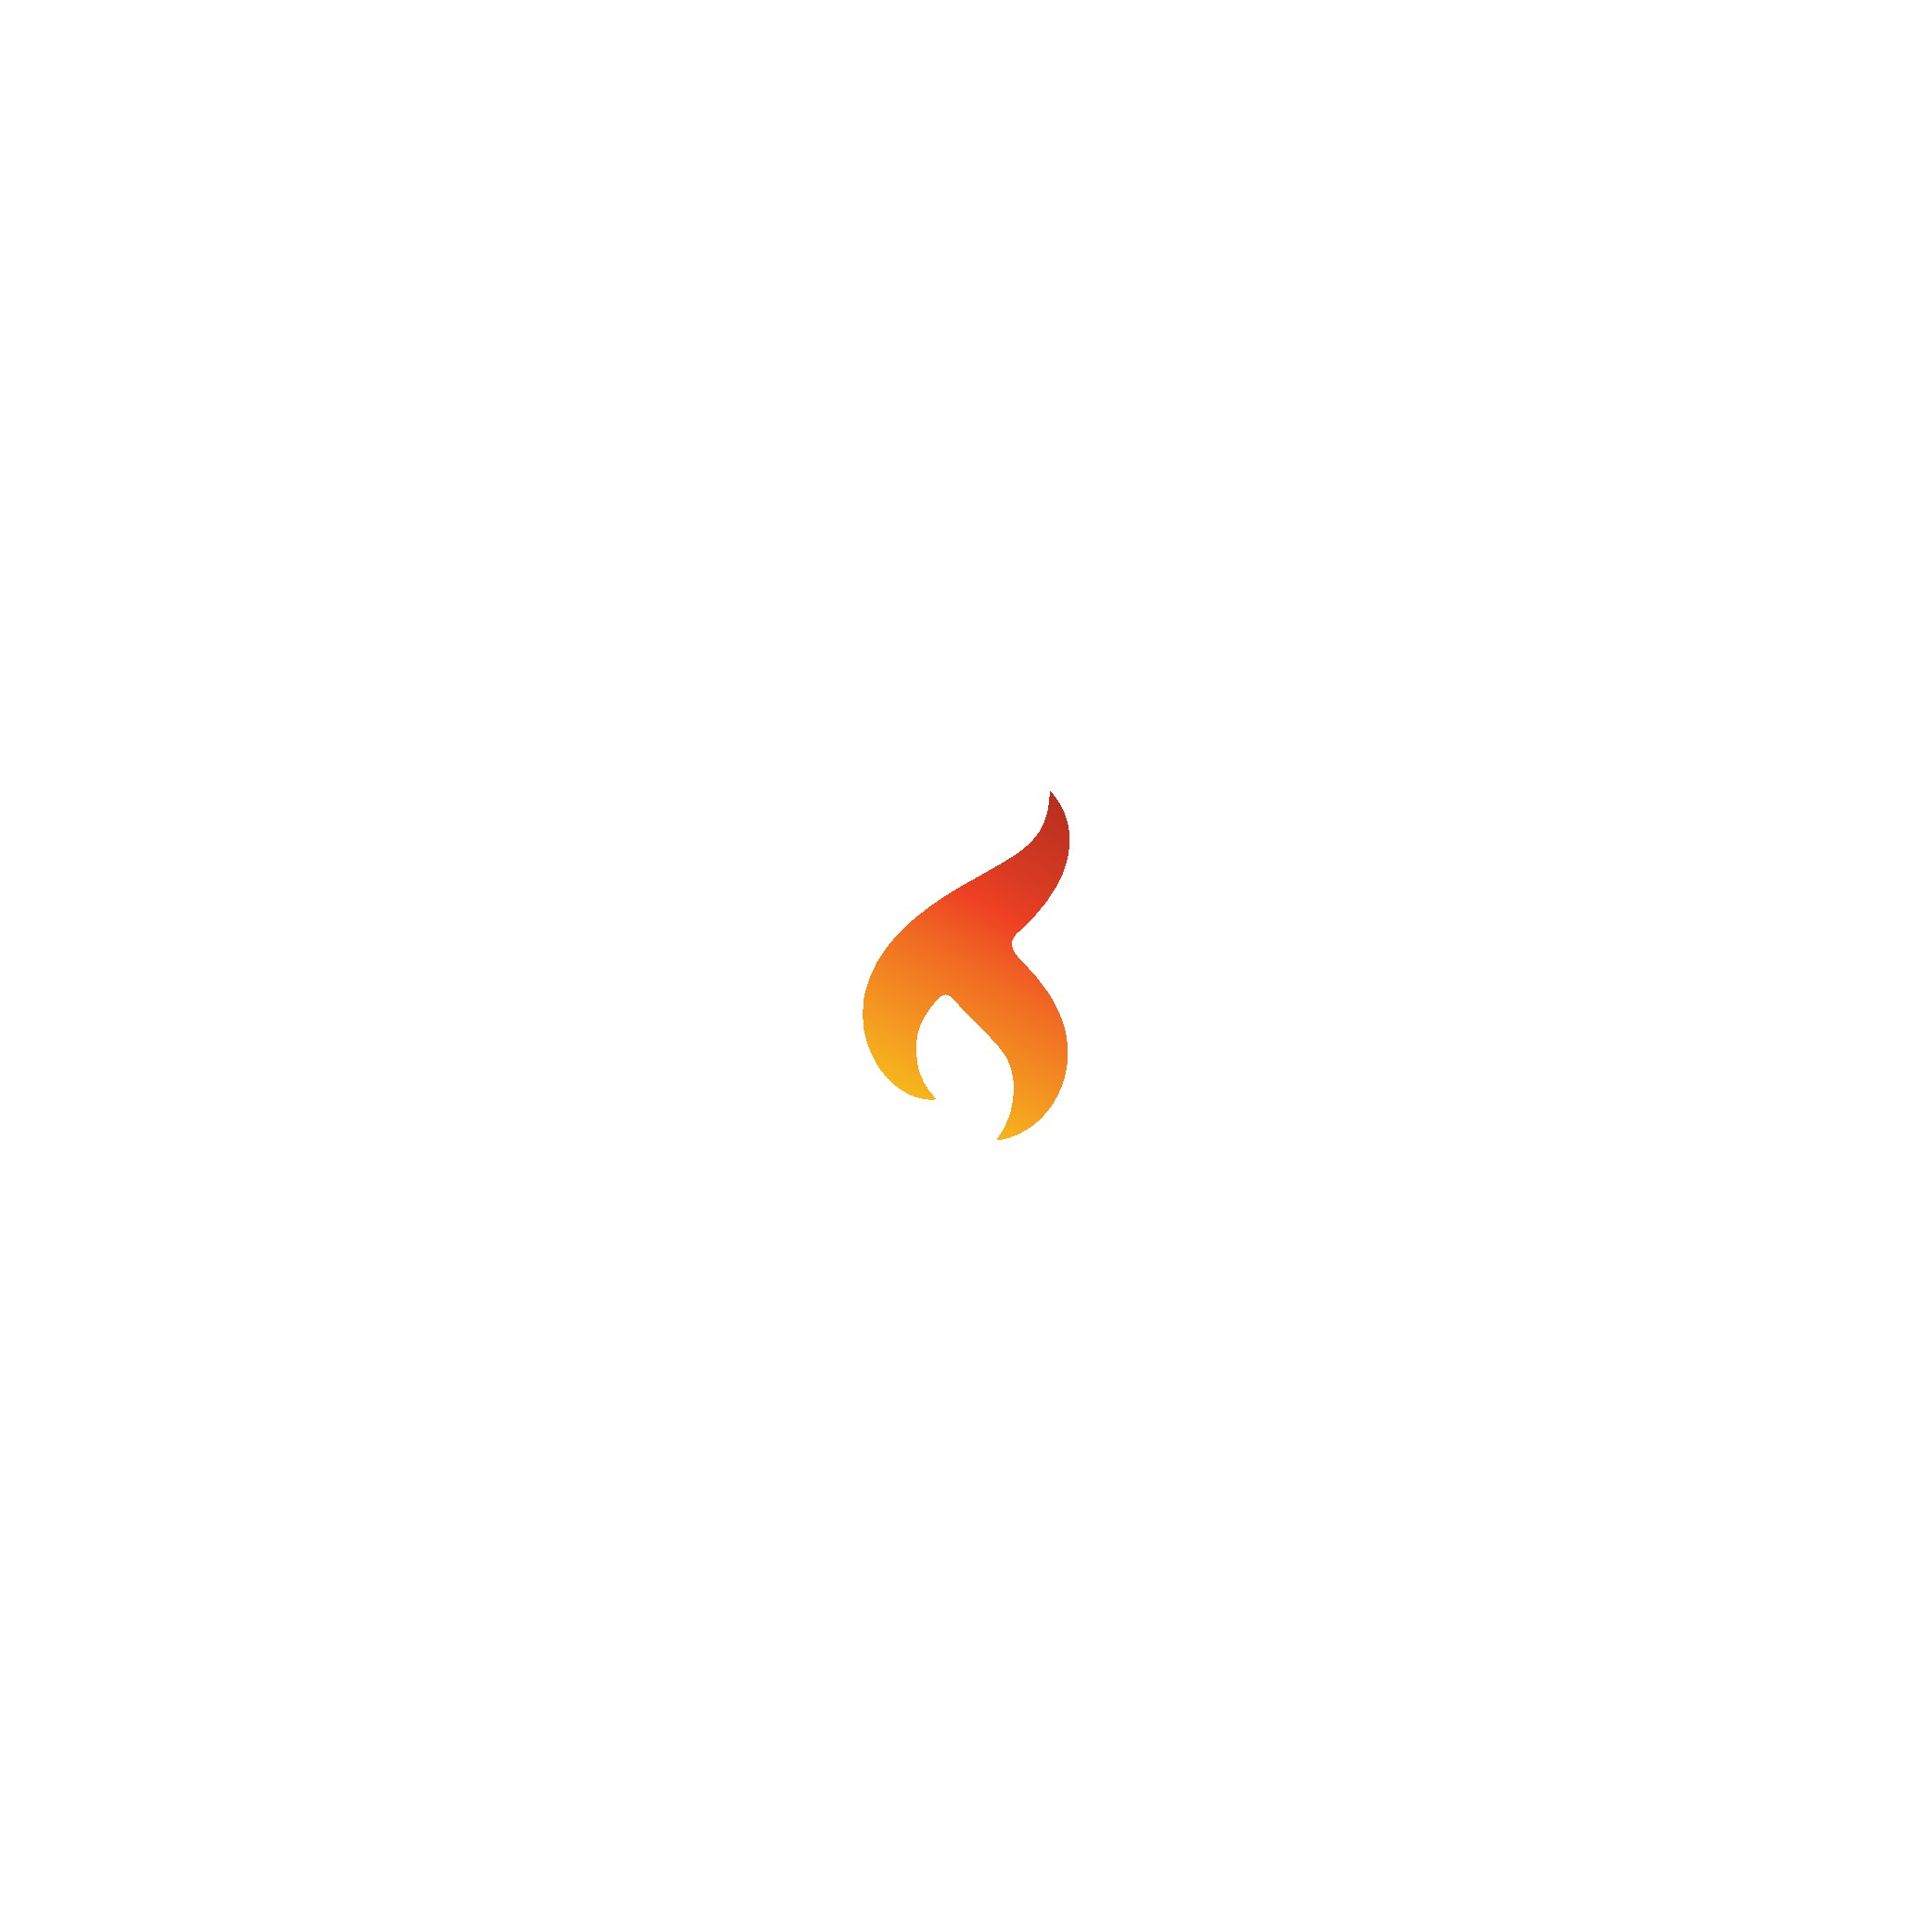 Design a powerful, simple logo for a NEW world wide flame concept